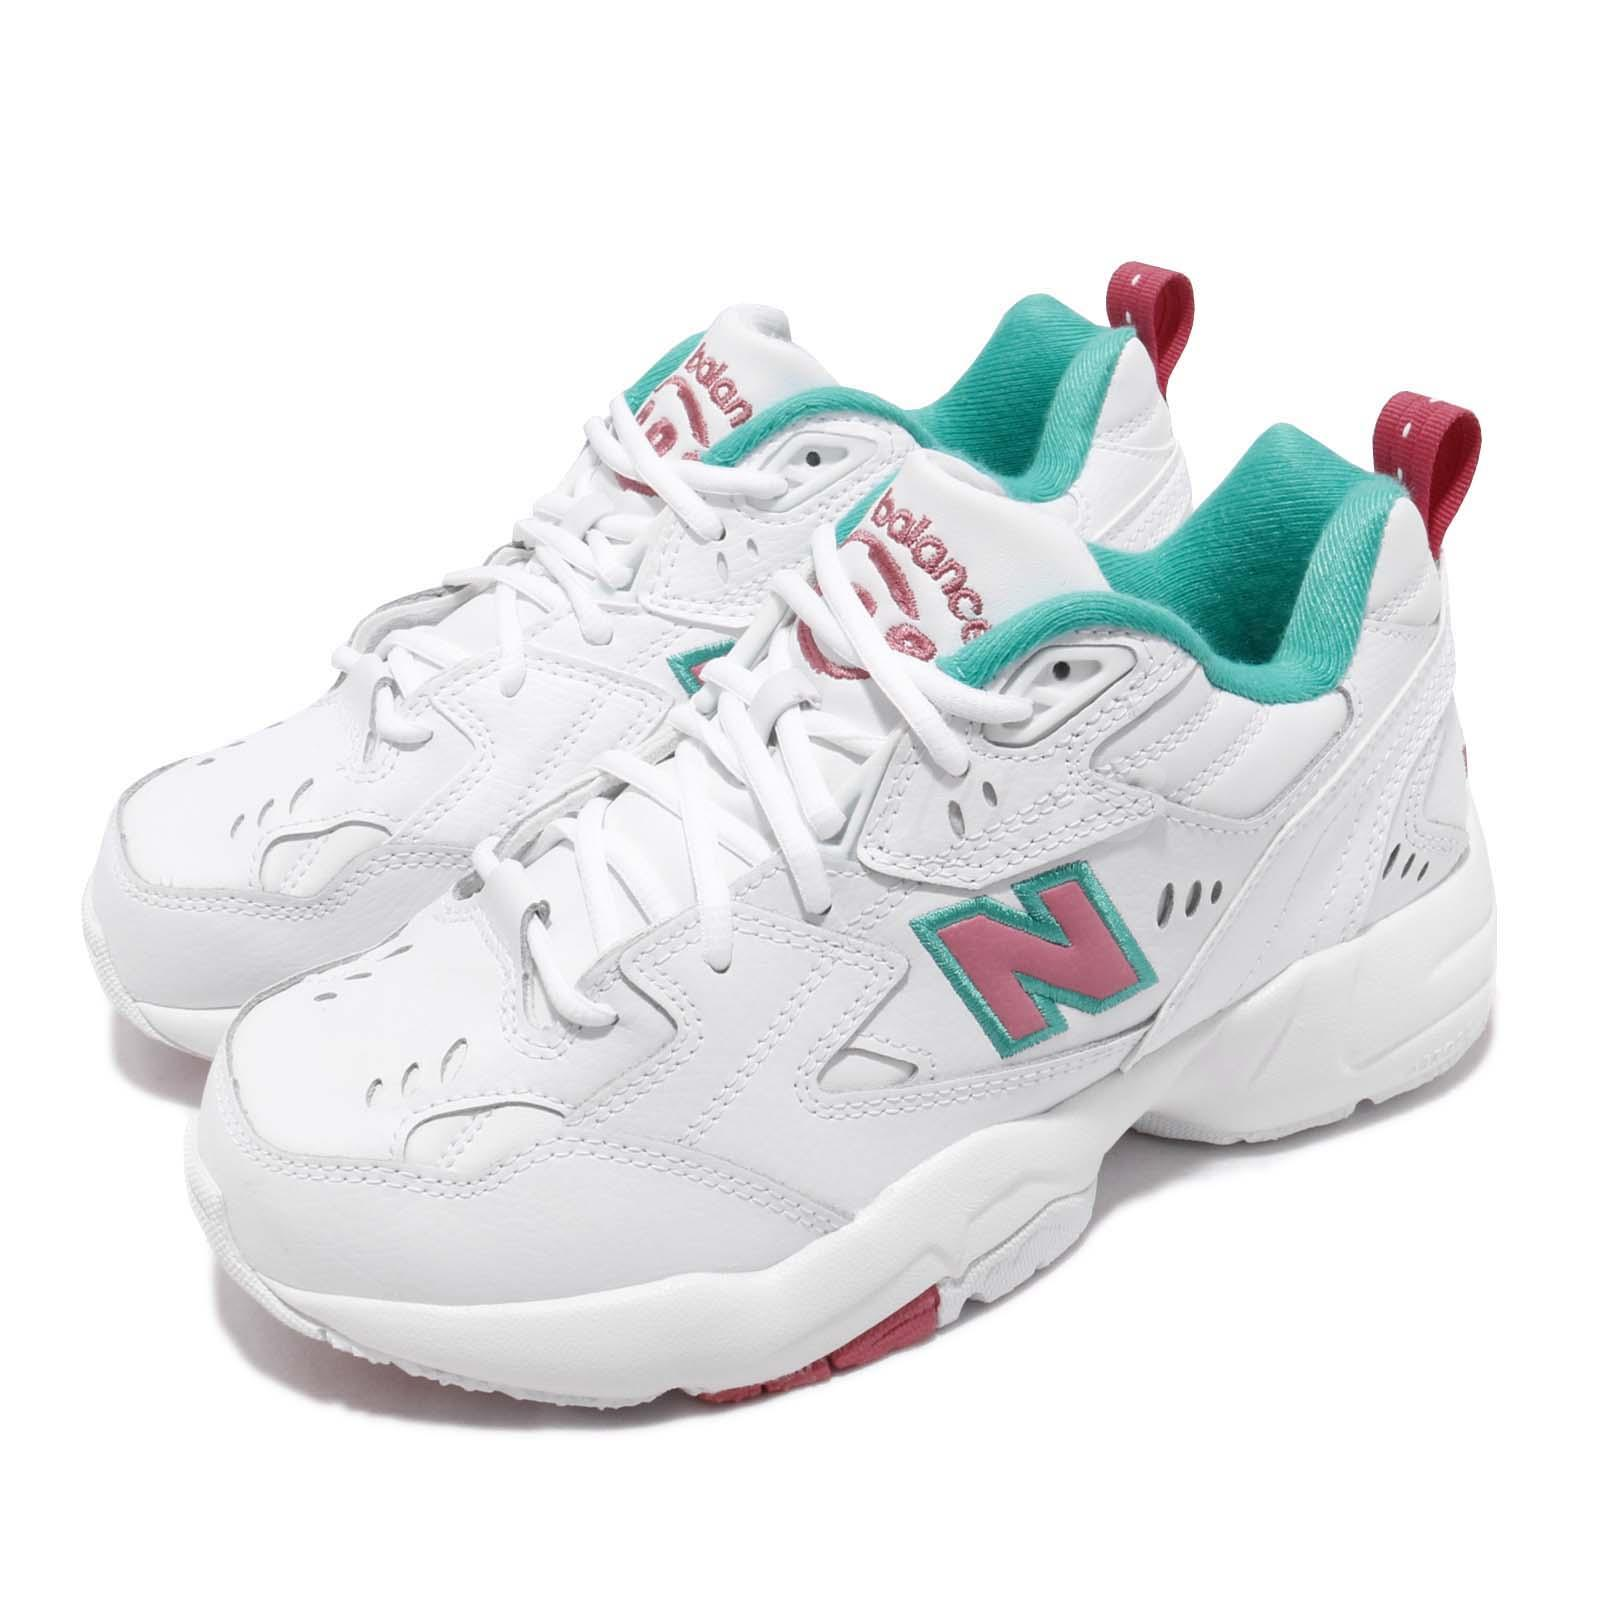 b69a01b4ccb6be Details about New Balance WX608WT1 D Wide White Pink Green Women Chunky  Daddy Shoes WX608WT1D